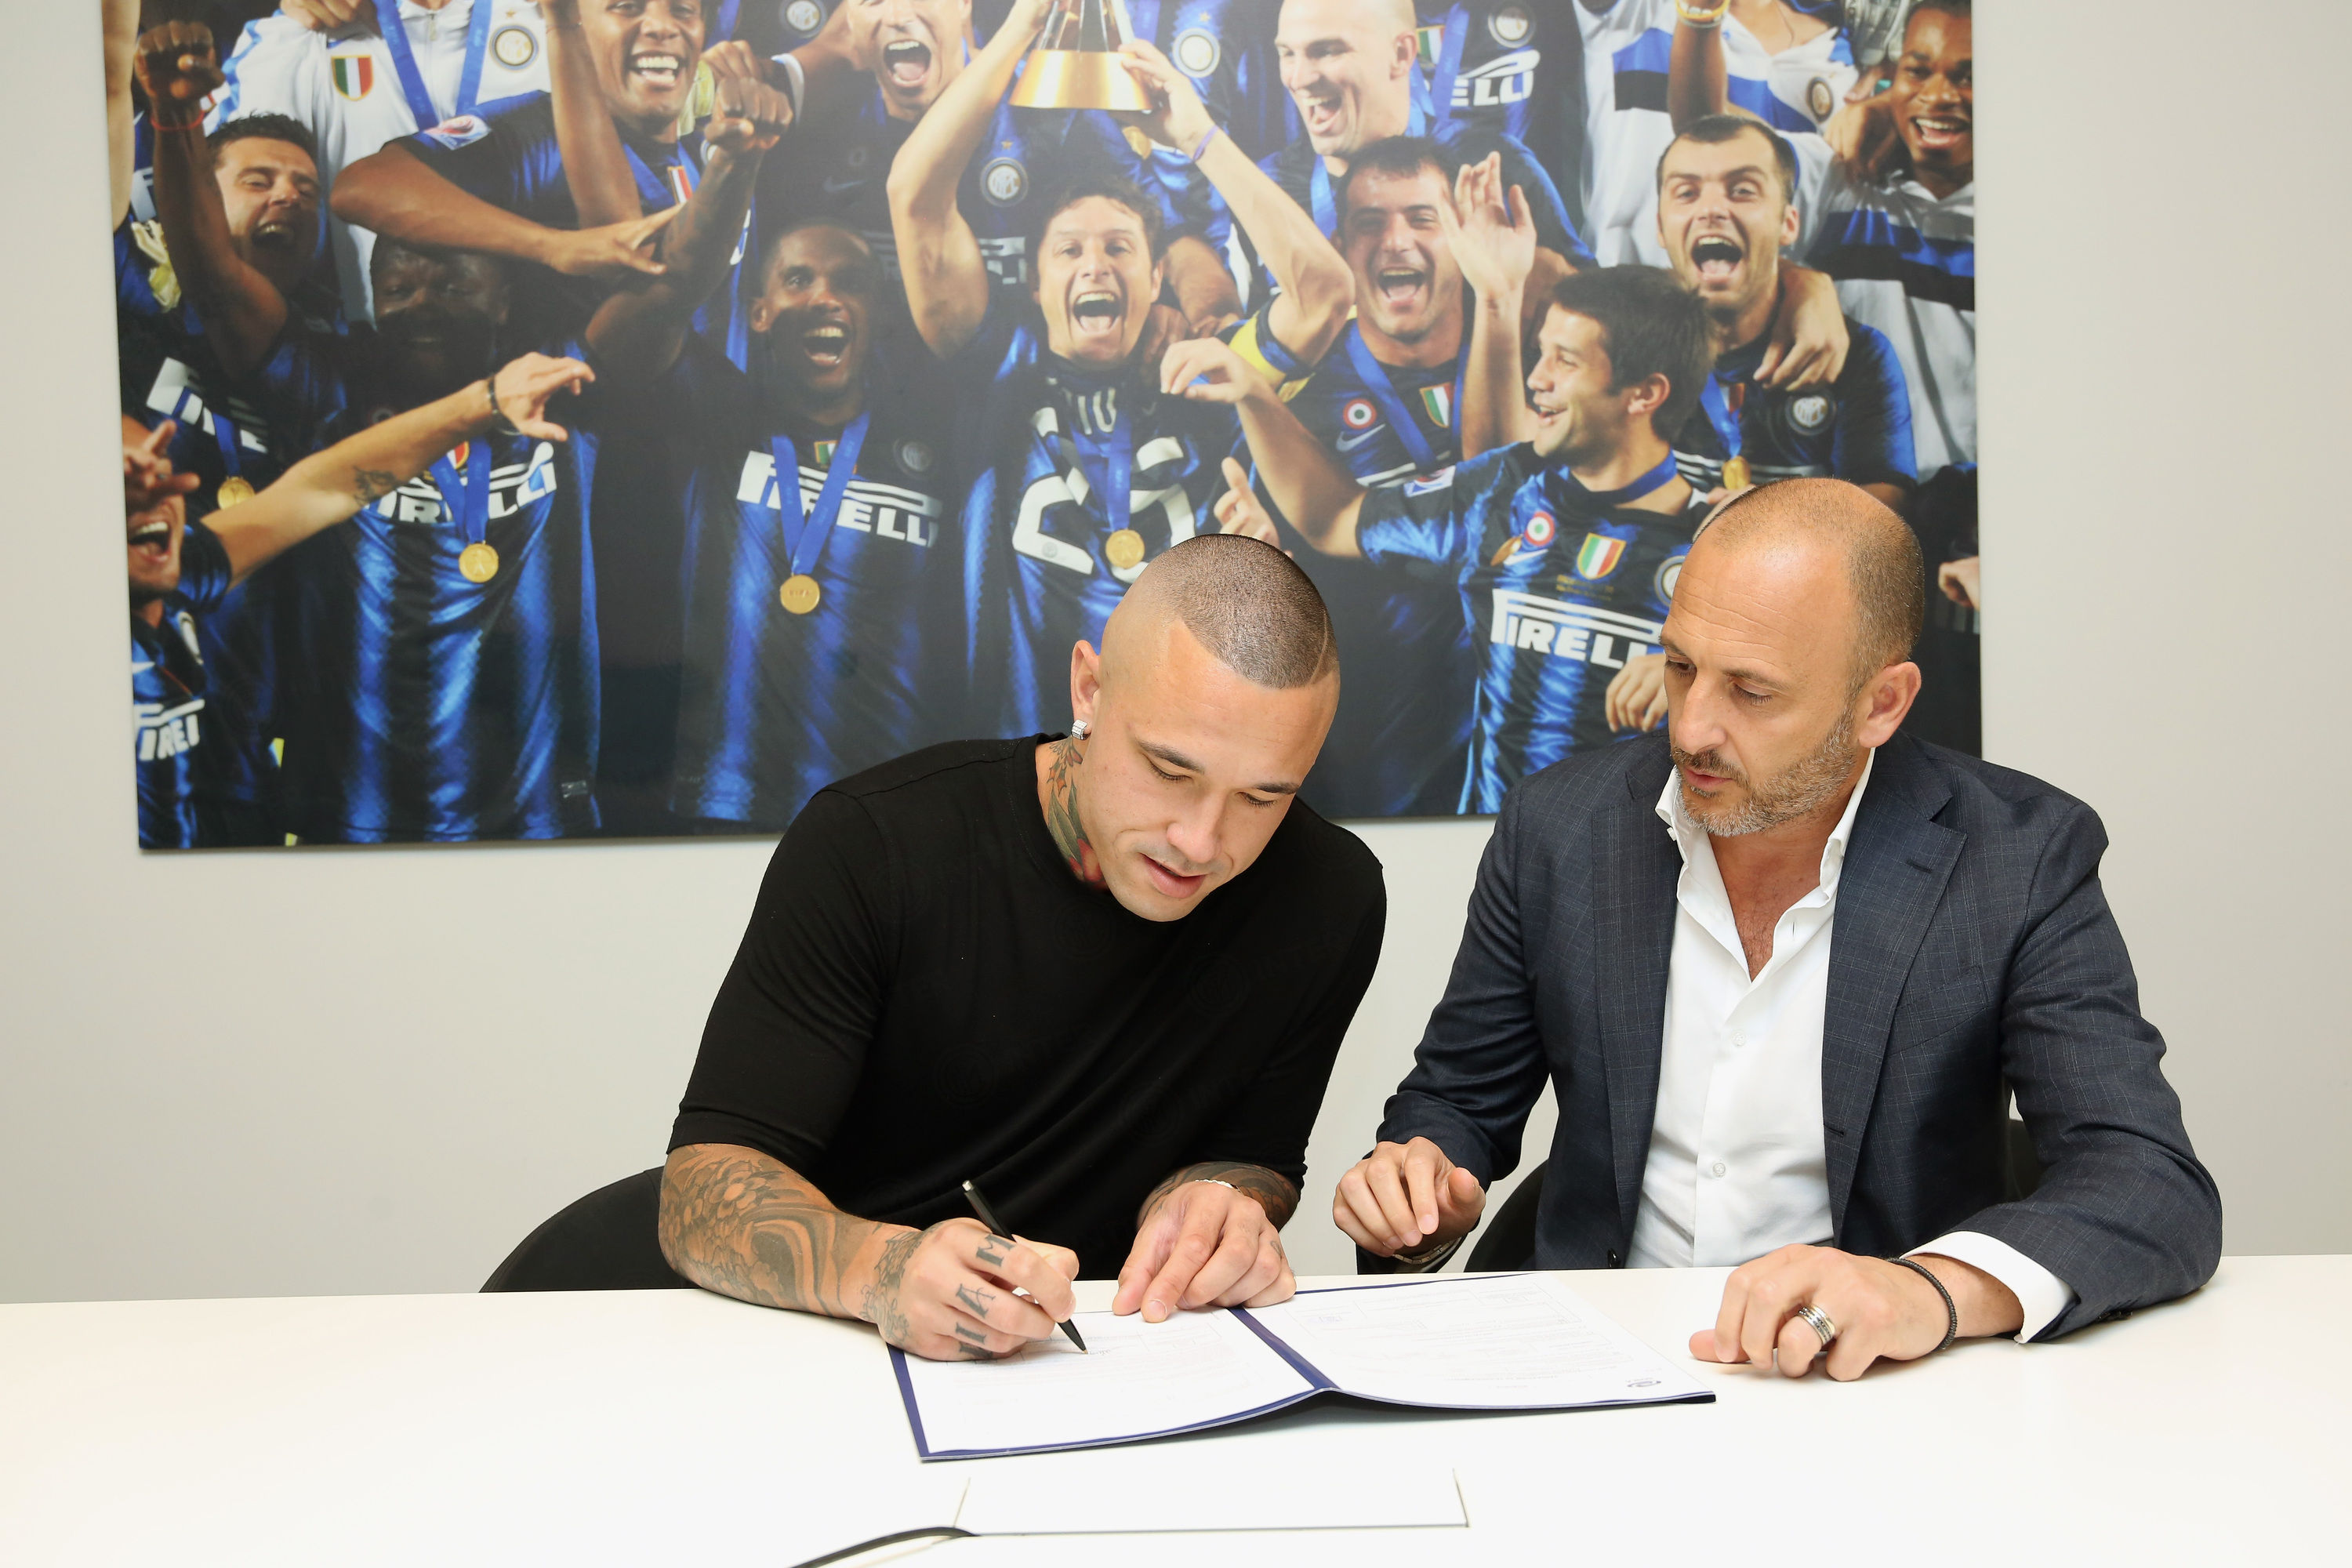 #Radjala! Nainggolan's first day as a Nerazzurri player